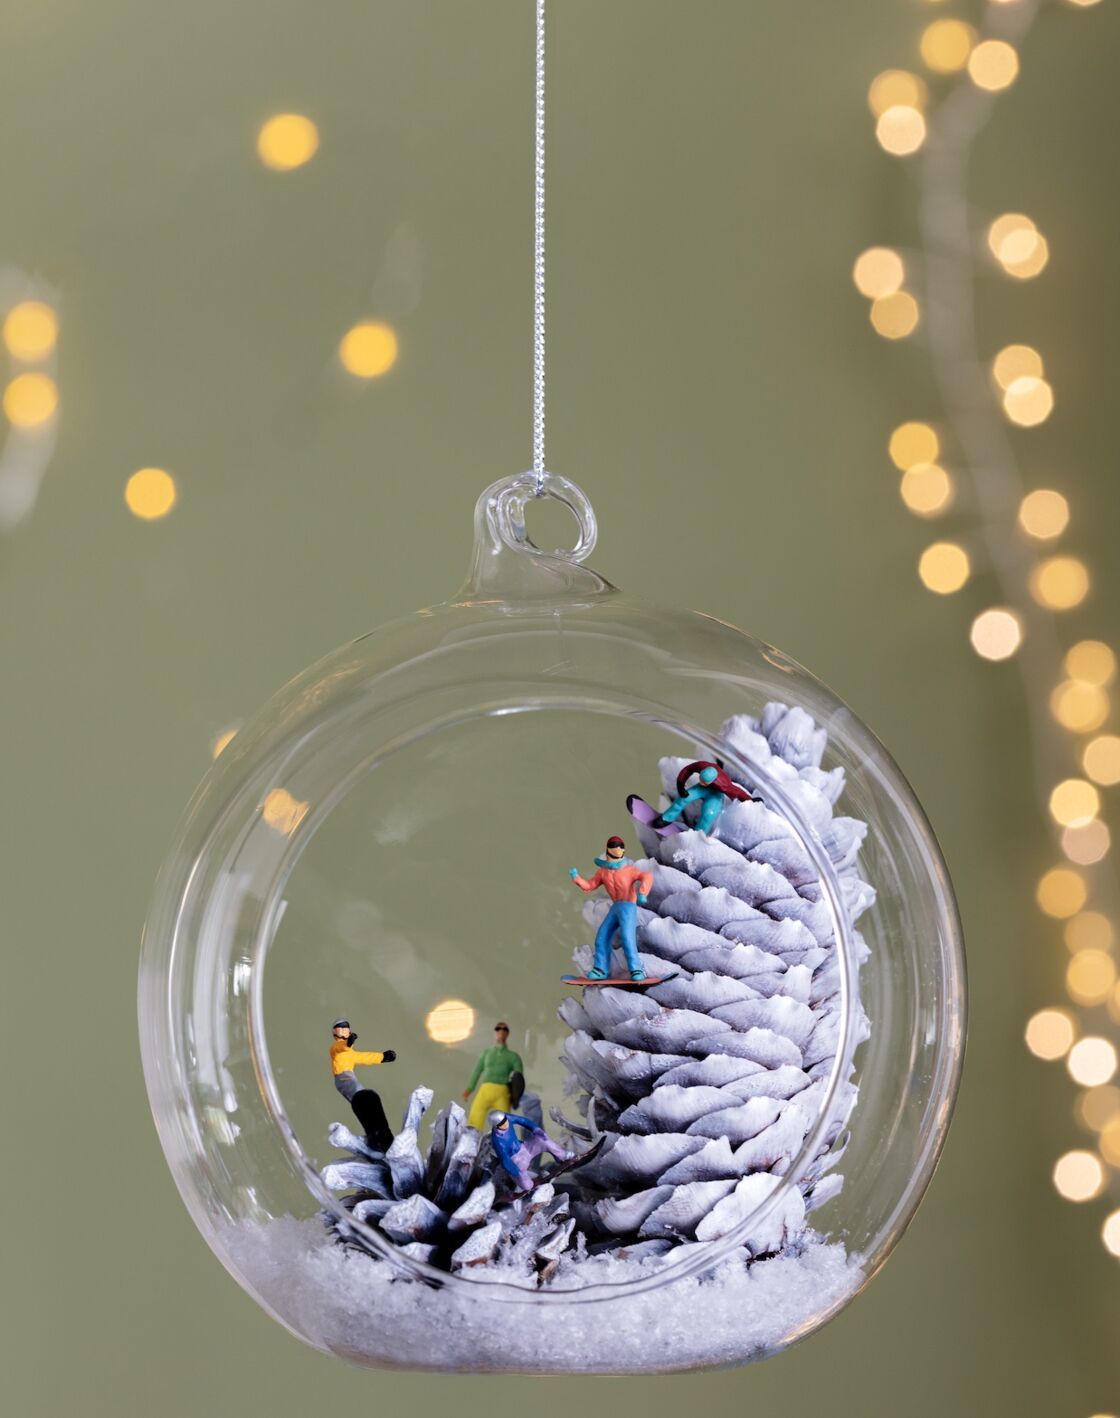 2021 Terrariums Our Ideas For Customizing Them At Christmas Femme Actuelle Le Mag